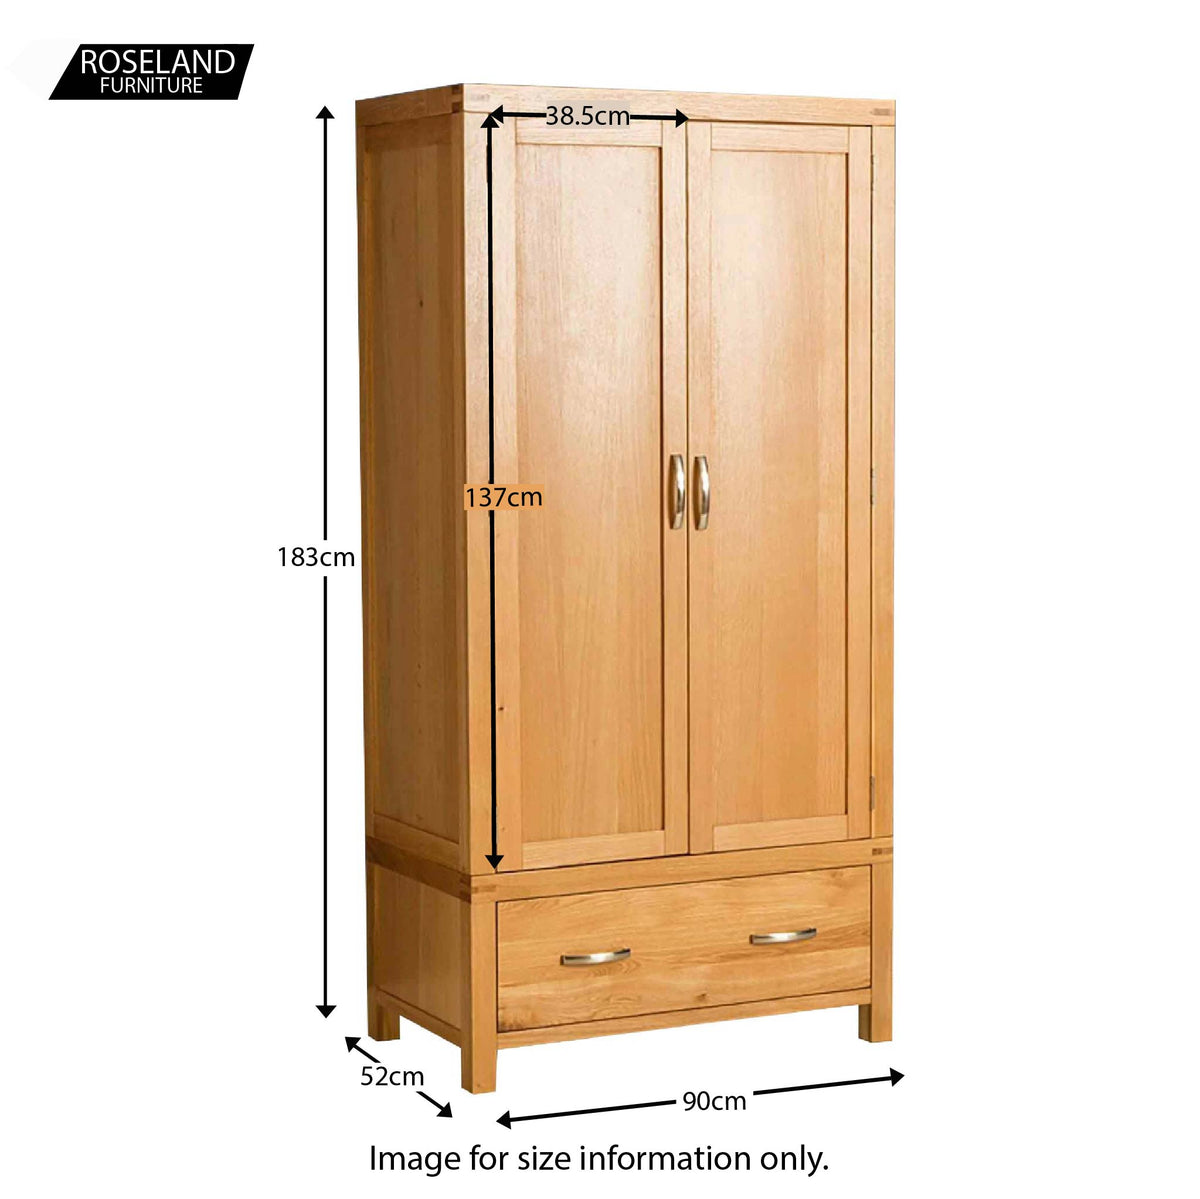 Abbey Light Oak Double Wardrobe with drawer - Size guide